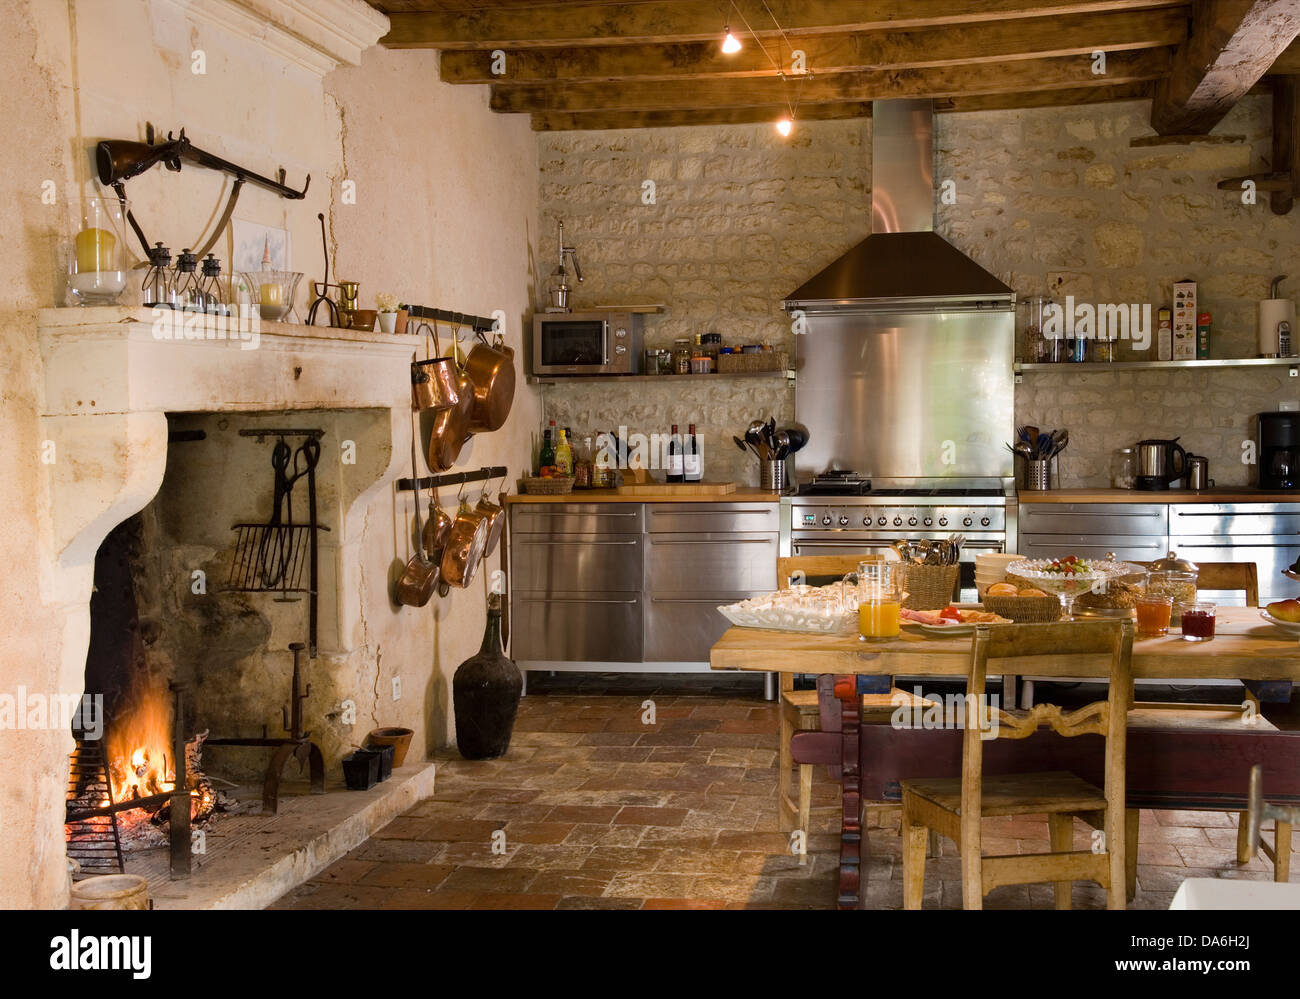 lit fire in fireplace in country kitchen with rustic wooden table and chairs stainless steel fitted - Kitchen Fireplace